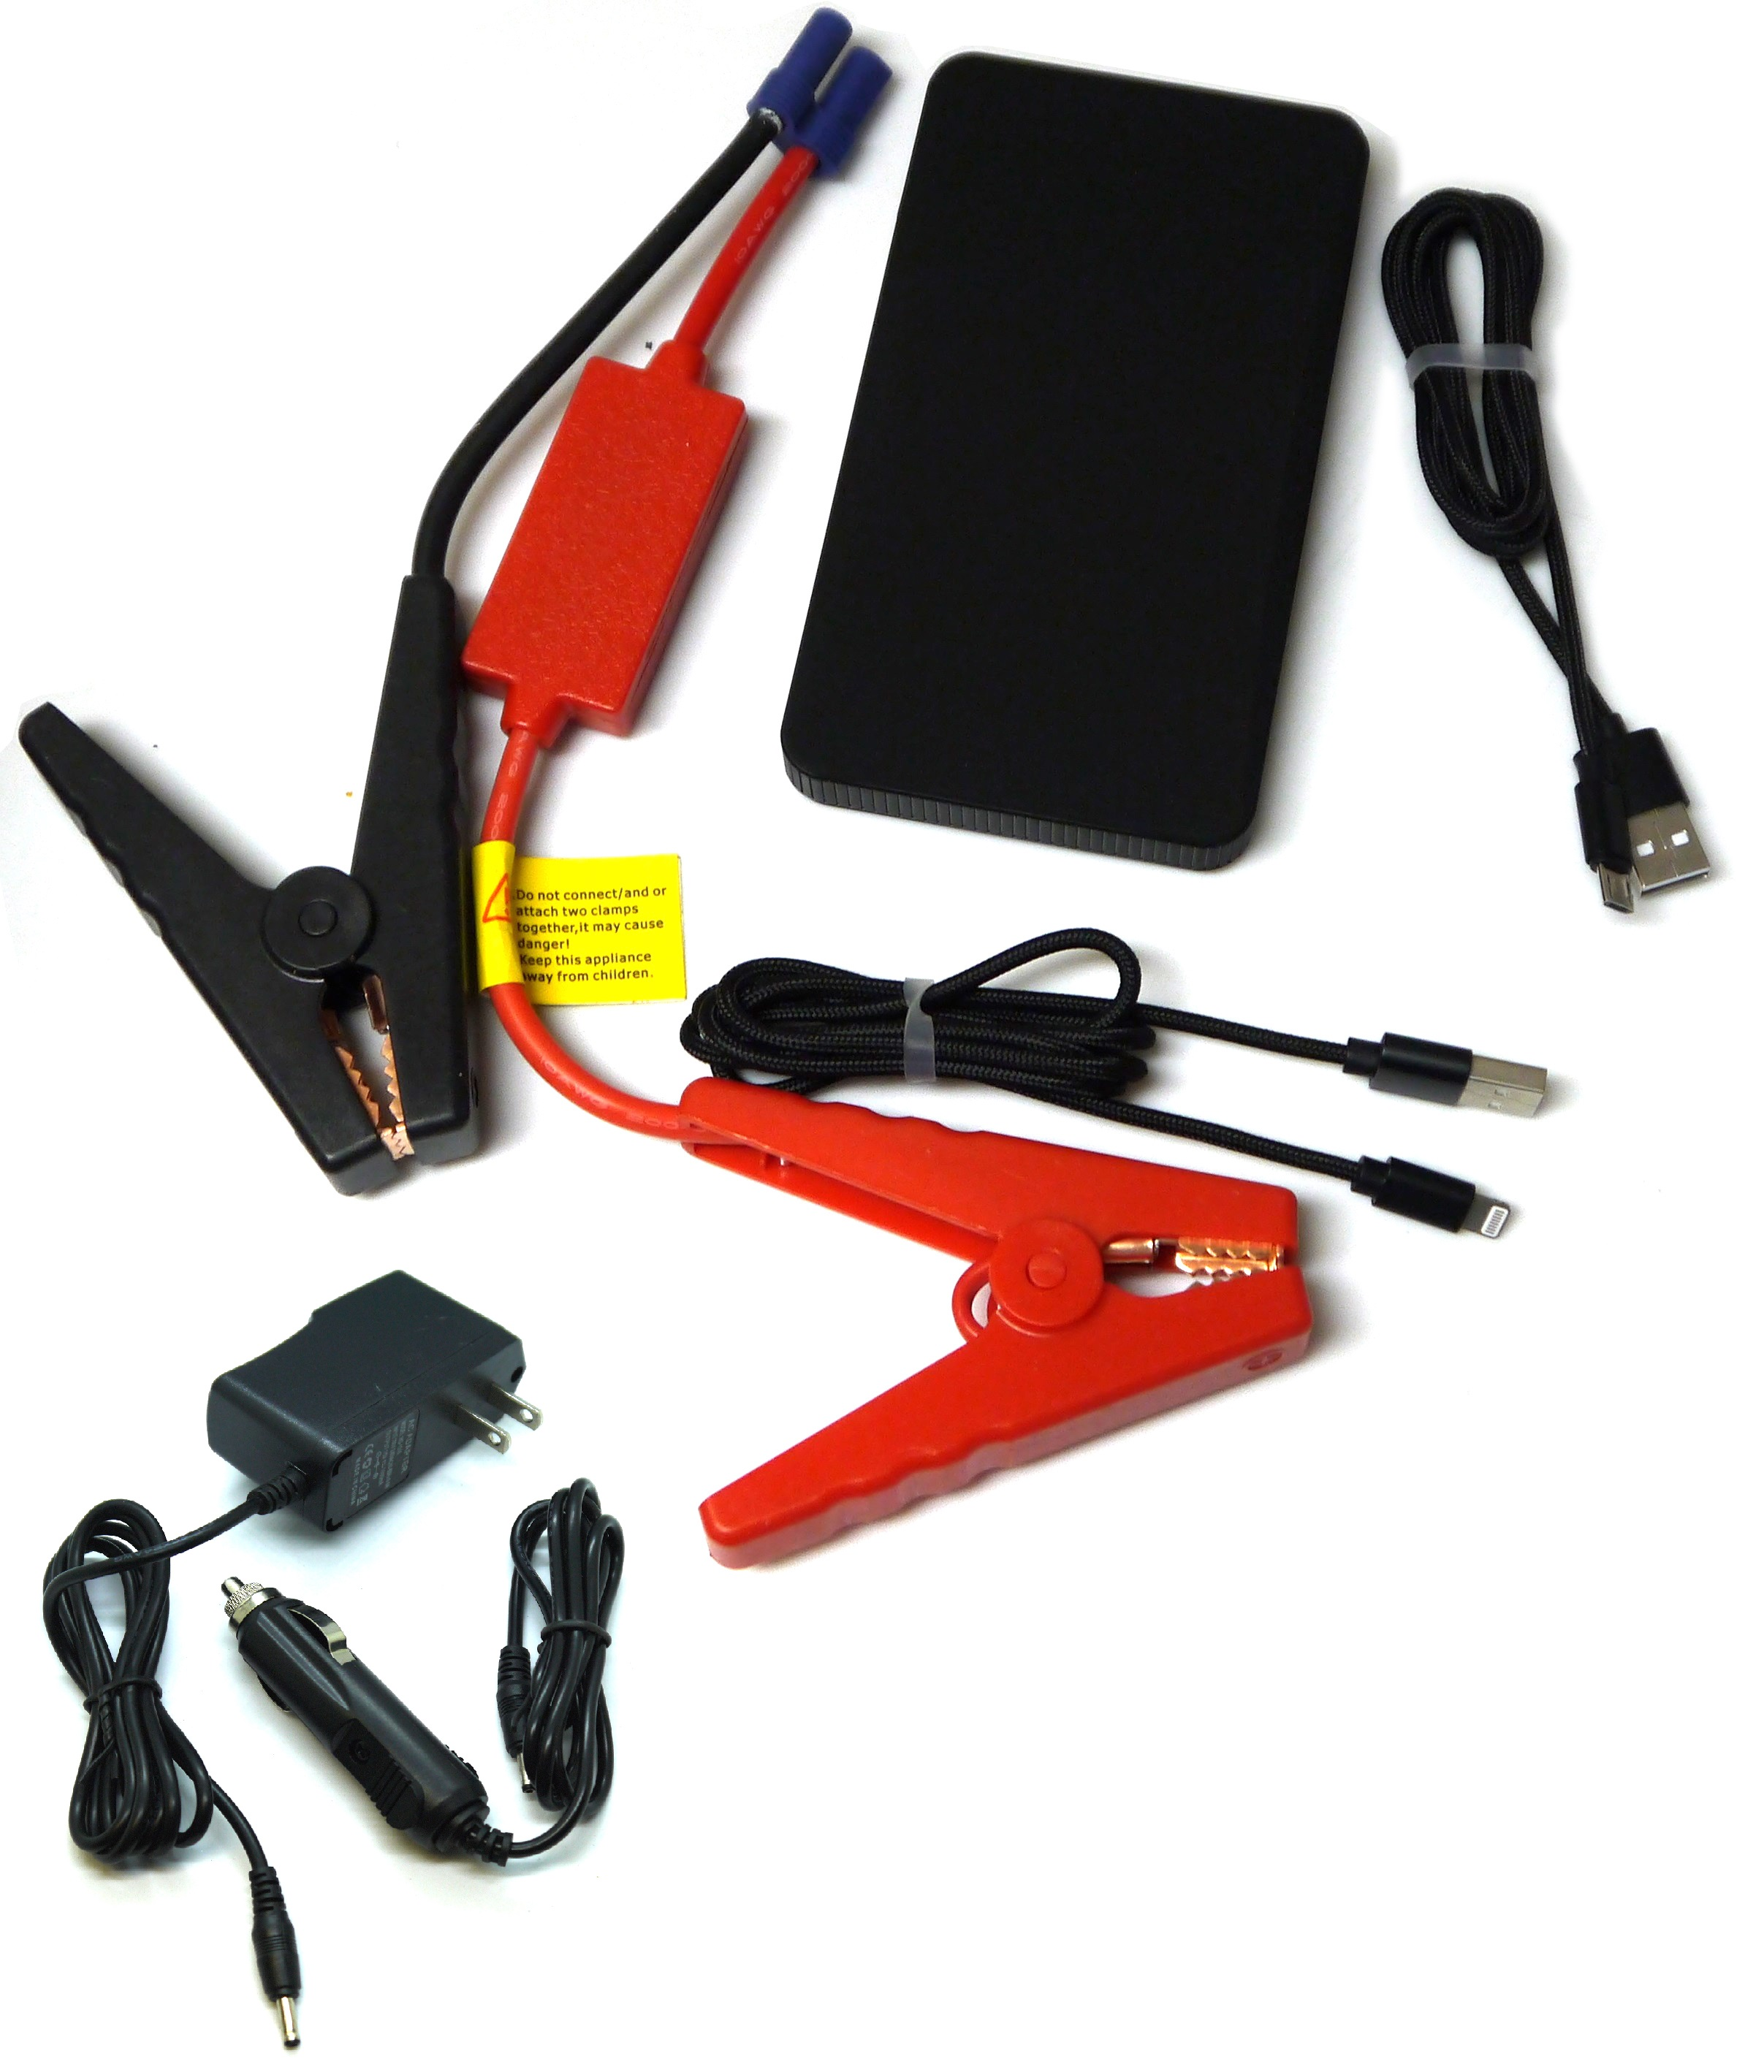 Sykik Rider SRJS300, Jump starter for motorcycles and cars